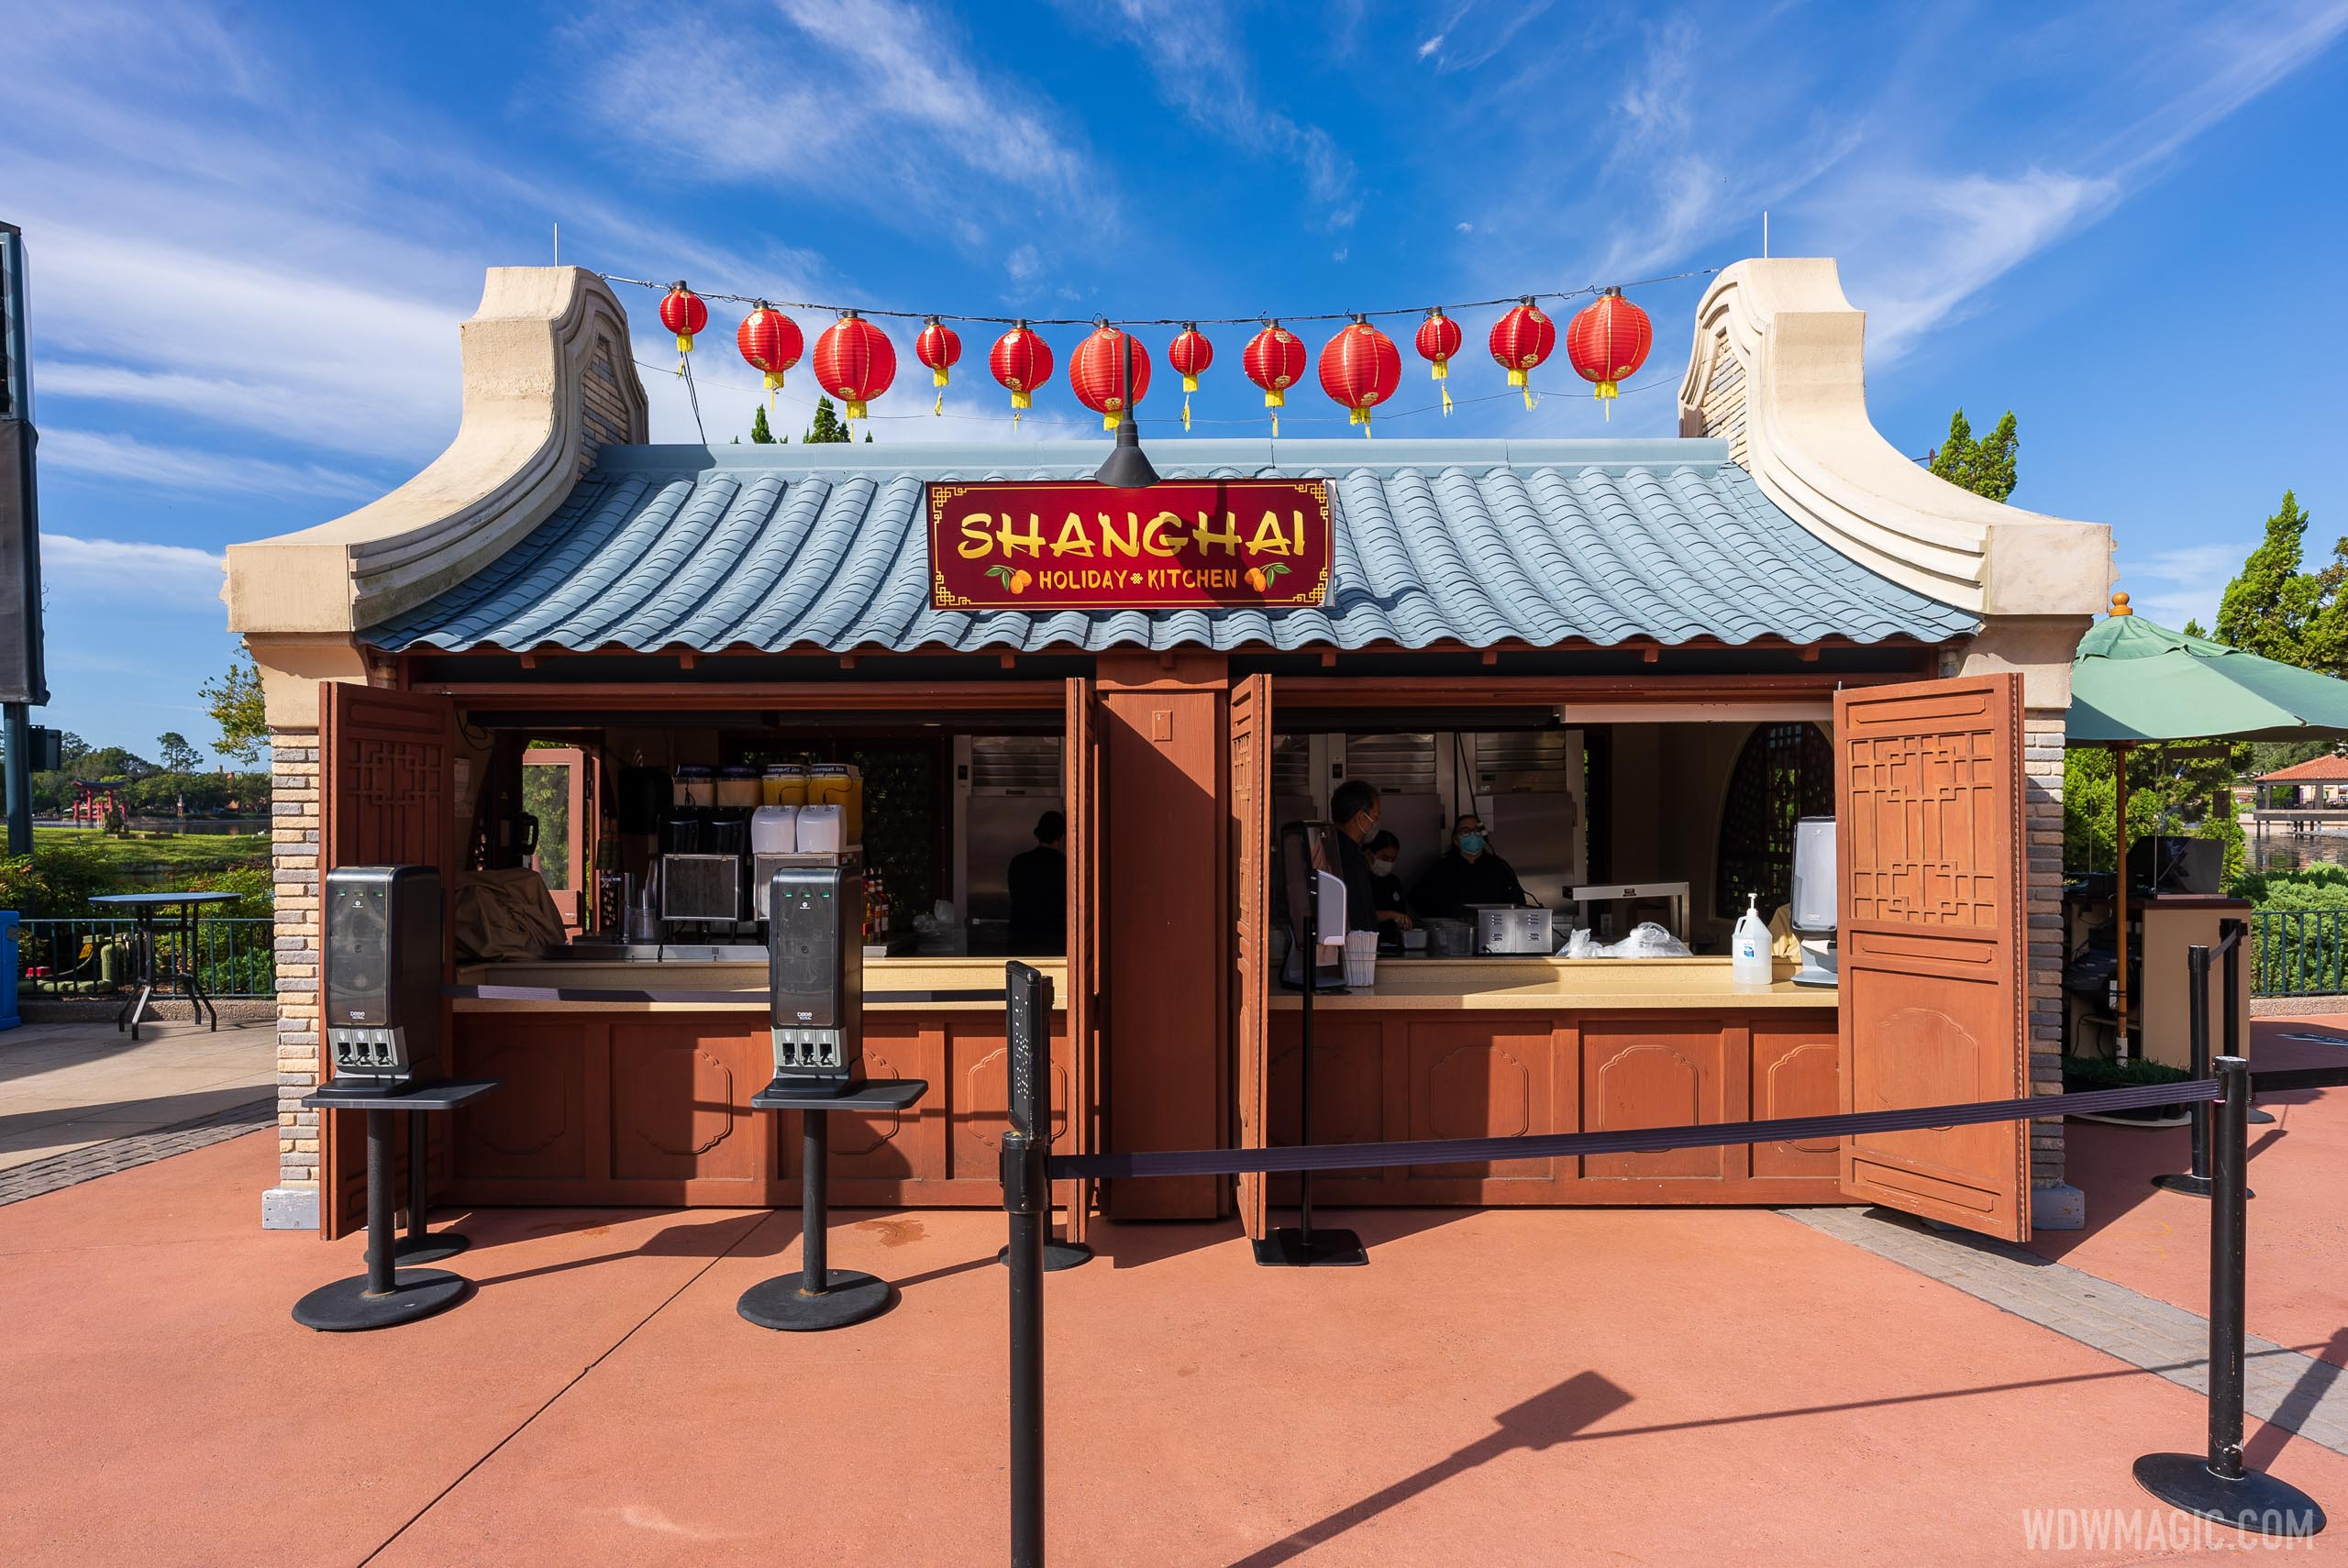 2020 Epcot Taste of International Festival of the Holidays - Holiday Kitchens